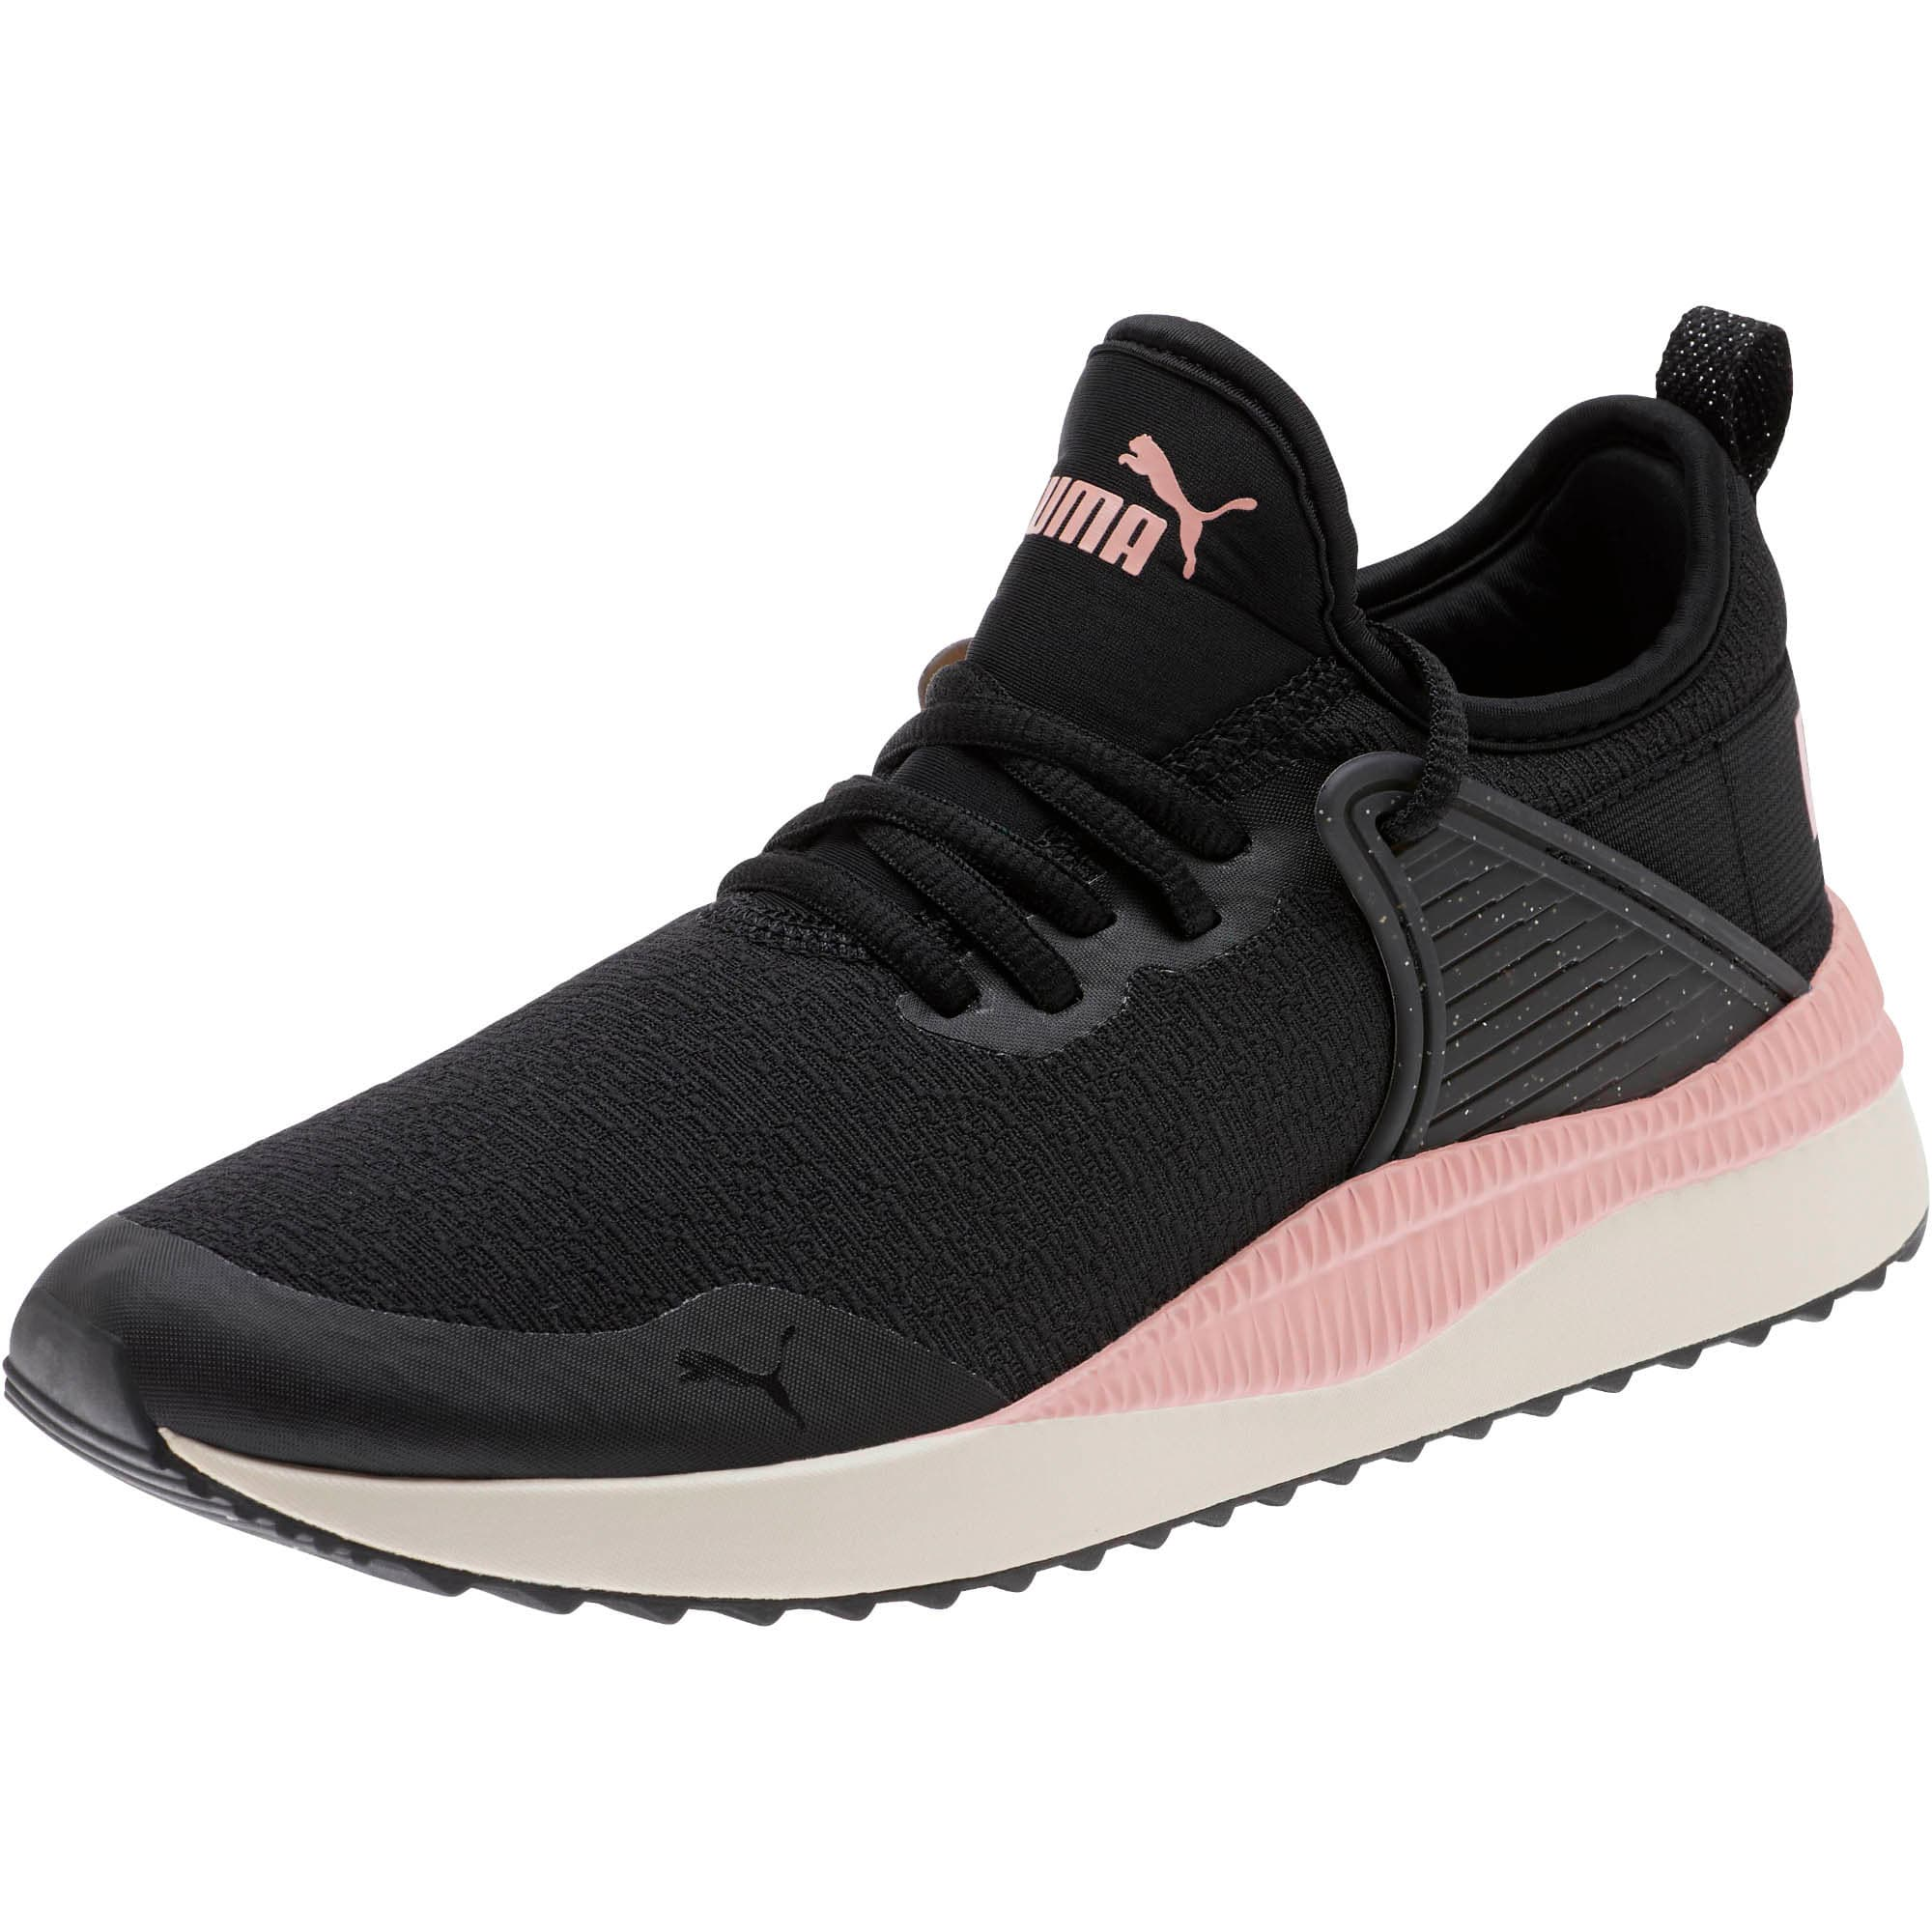 Thumbnail 1 of Pacer Next Cage Glitter Women's Sneakers, Puma Black-Bridal Rose, medium